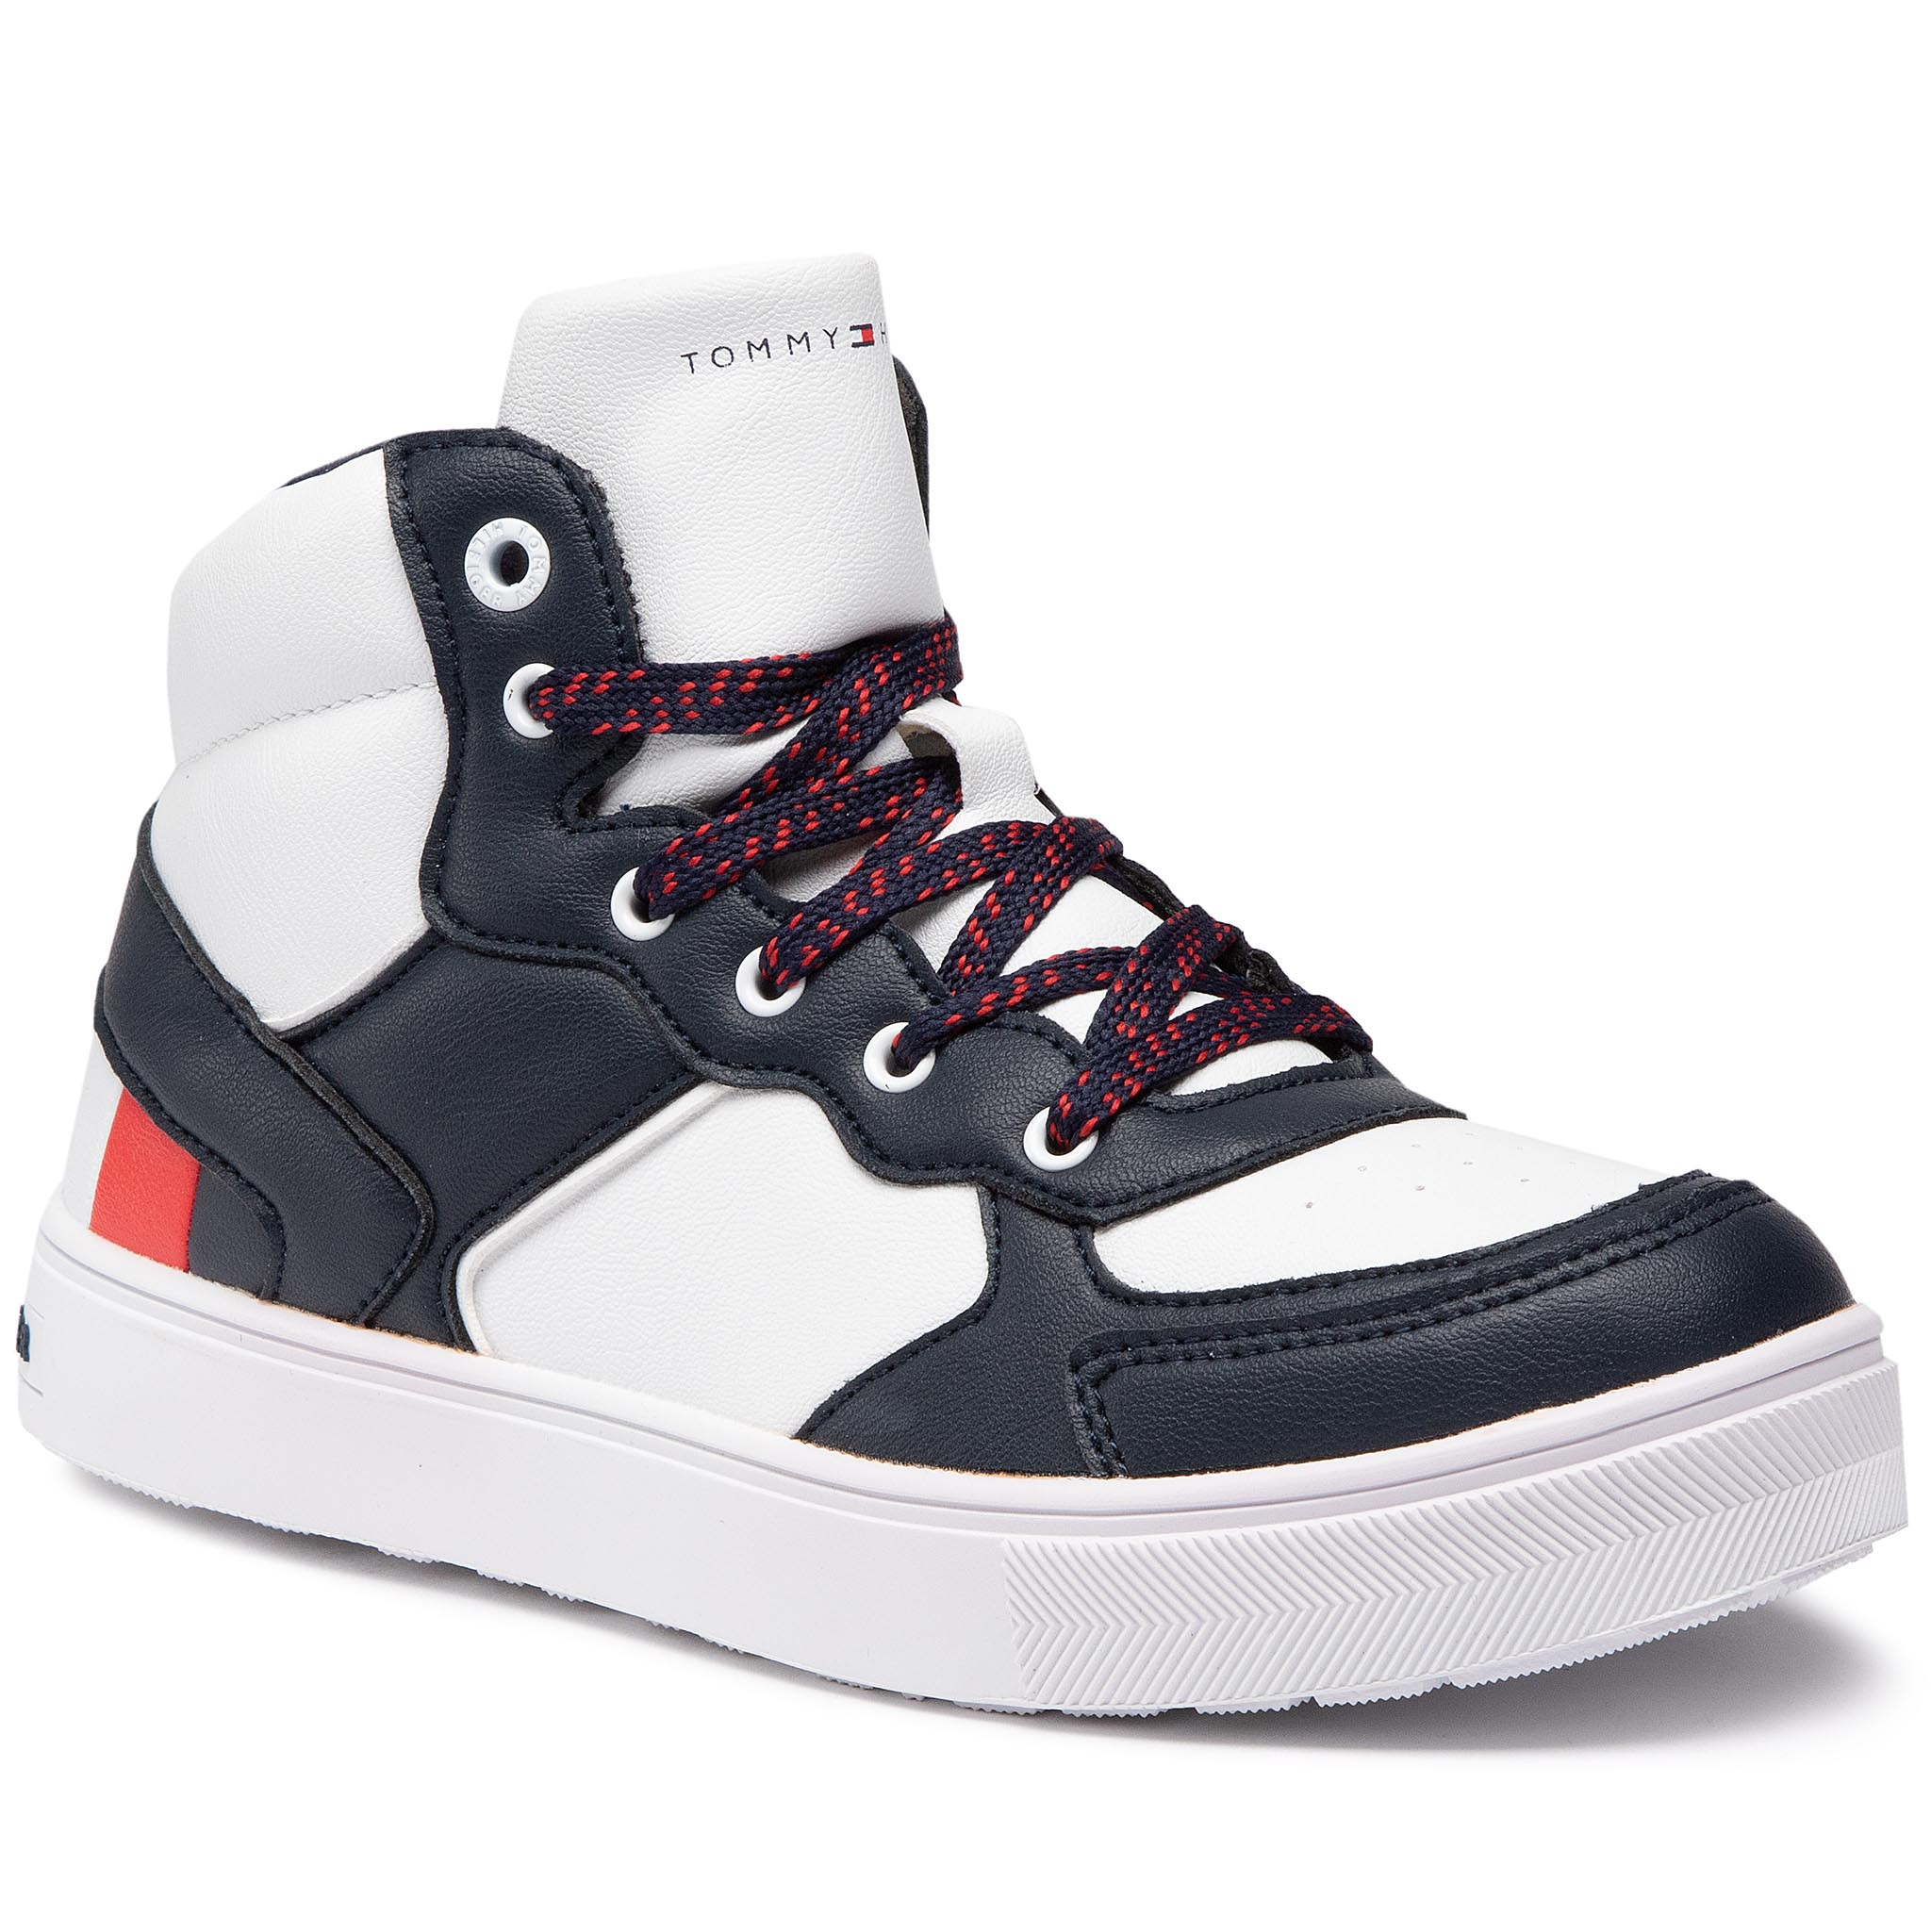 Sneakers TOMMY HILFIGER - T3B4-30928-0621X007 S Blue/White